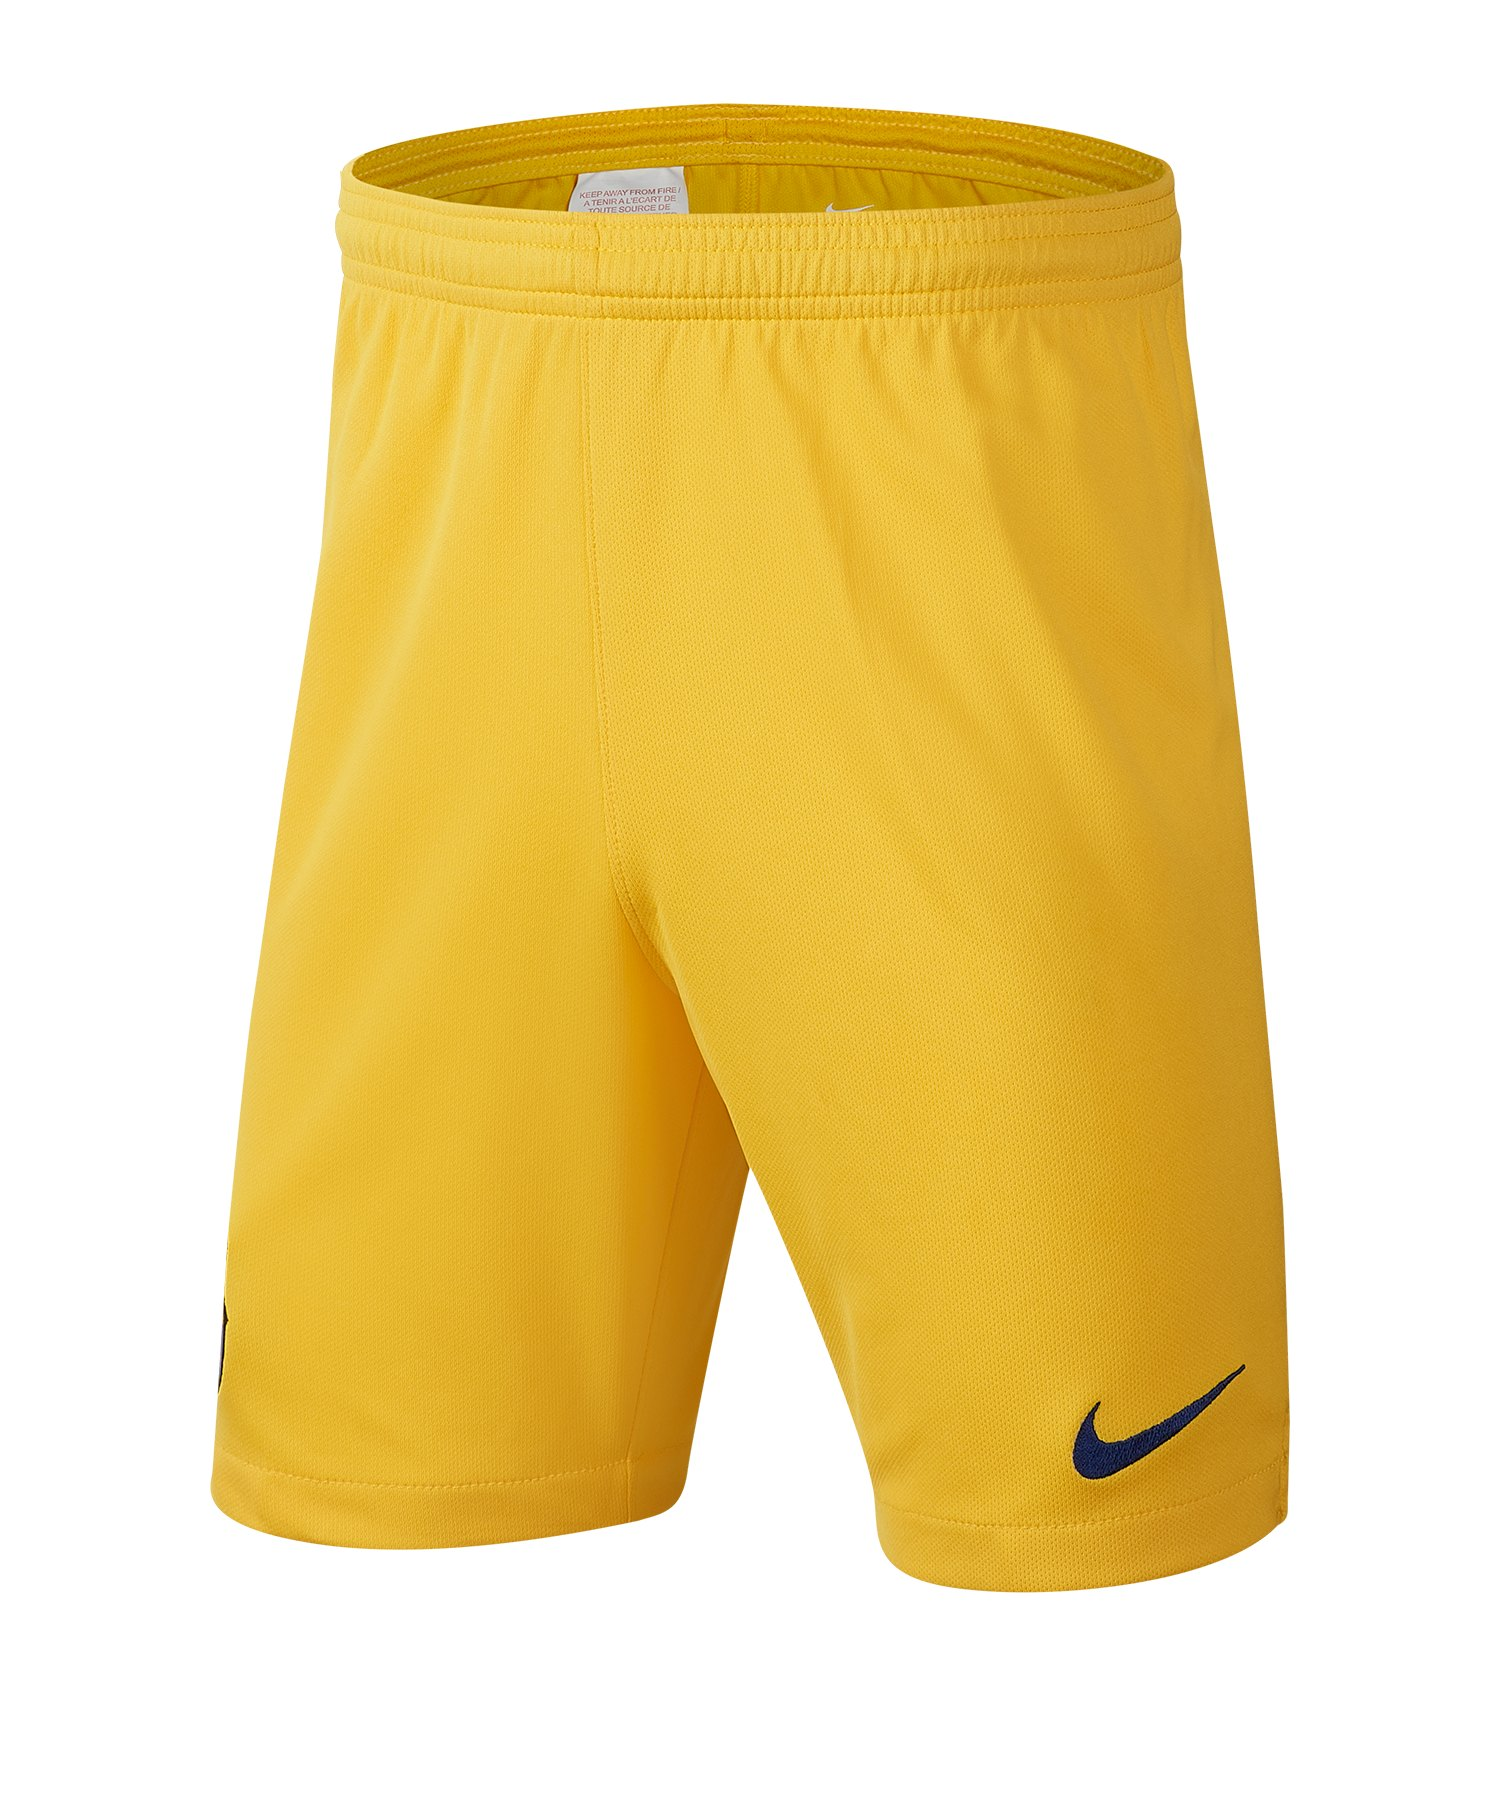 Nike FC Barcelona Short Away 2019/2020 Kids Gelb F726 - gelb